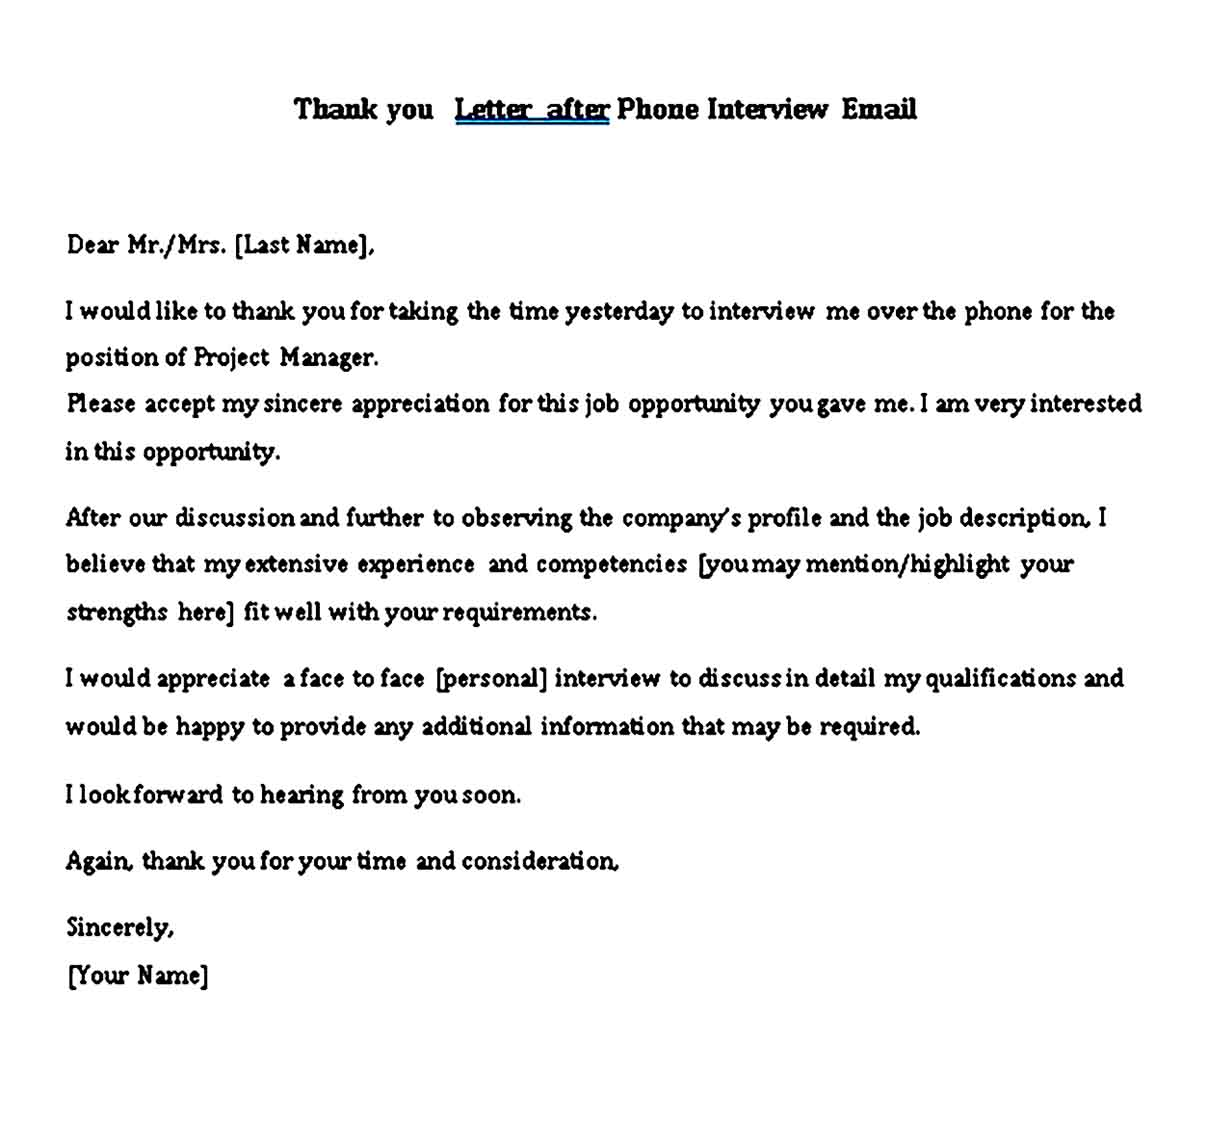 Thank you Letter after Phone Interview Email